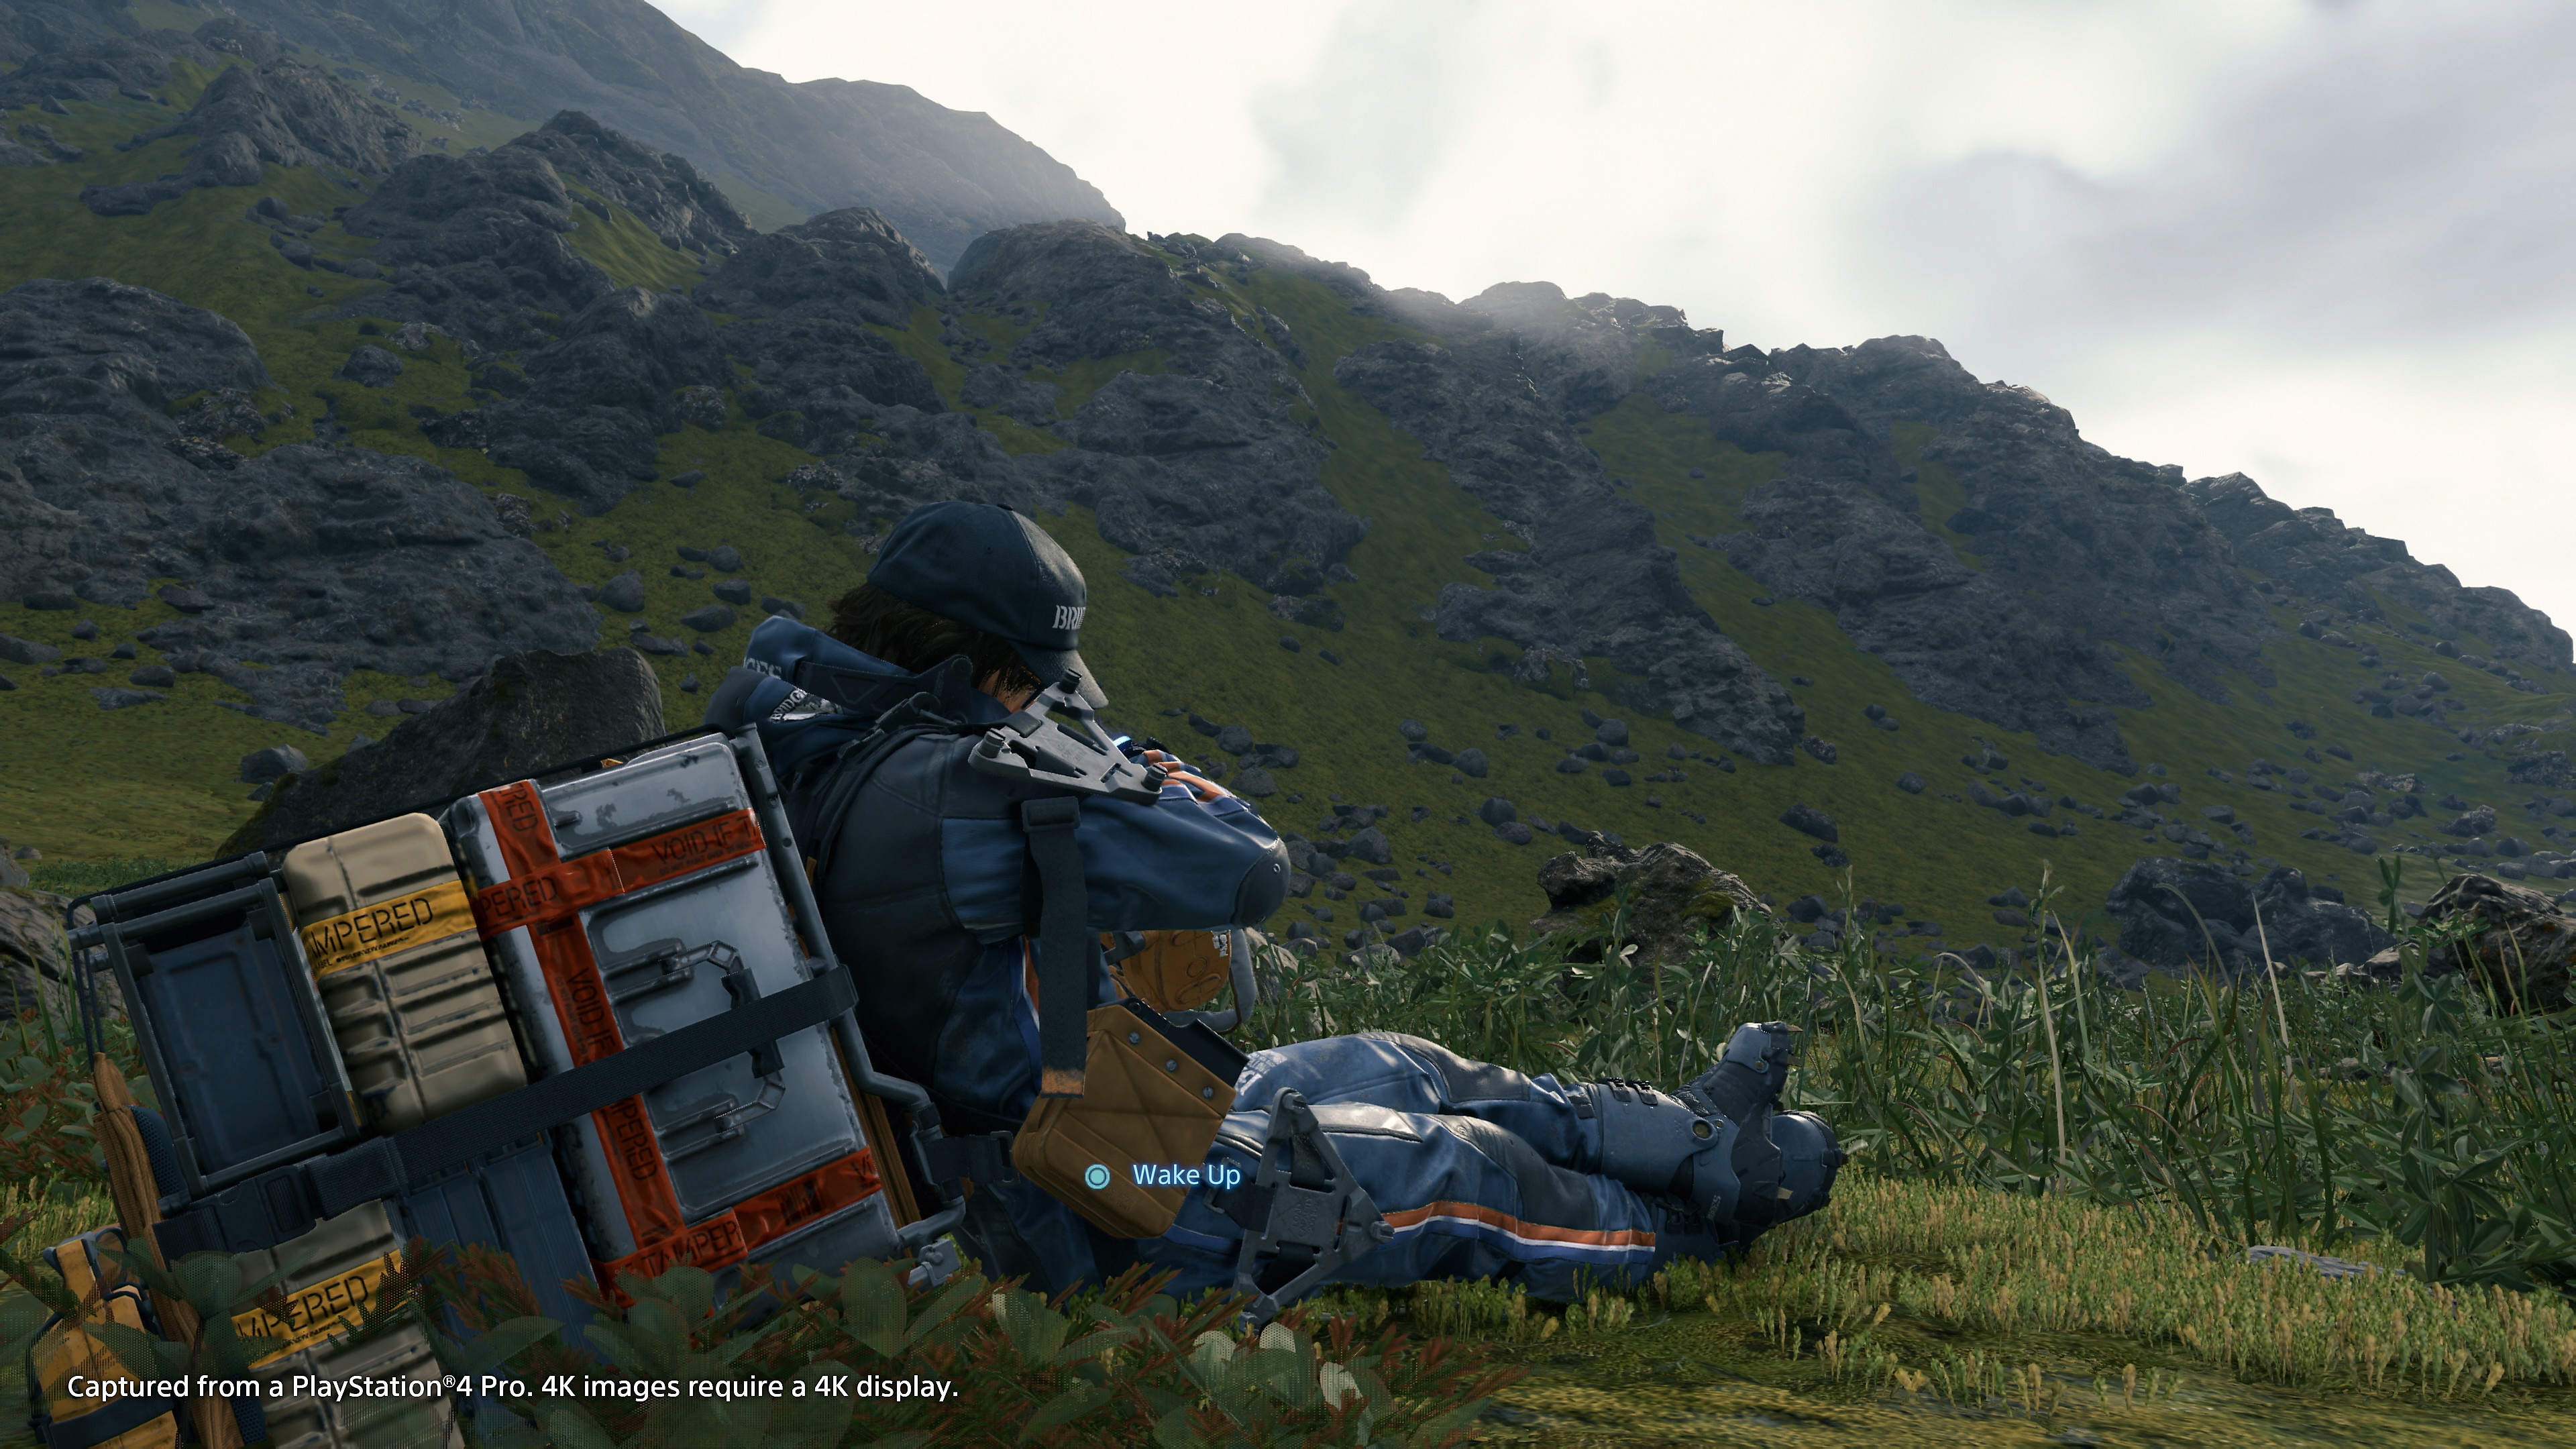 Character from video game Death Stranding sitting in mountains